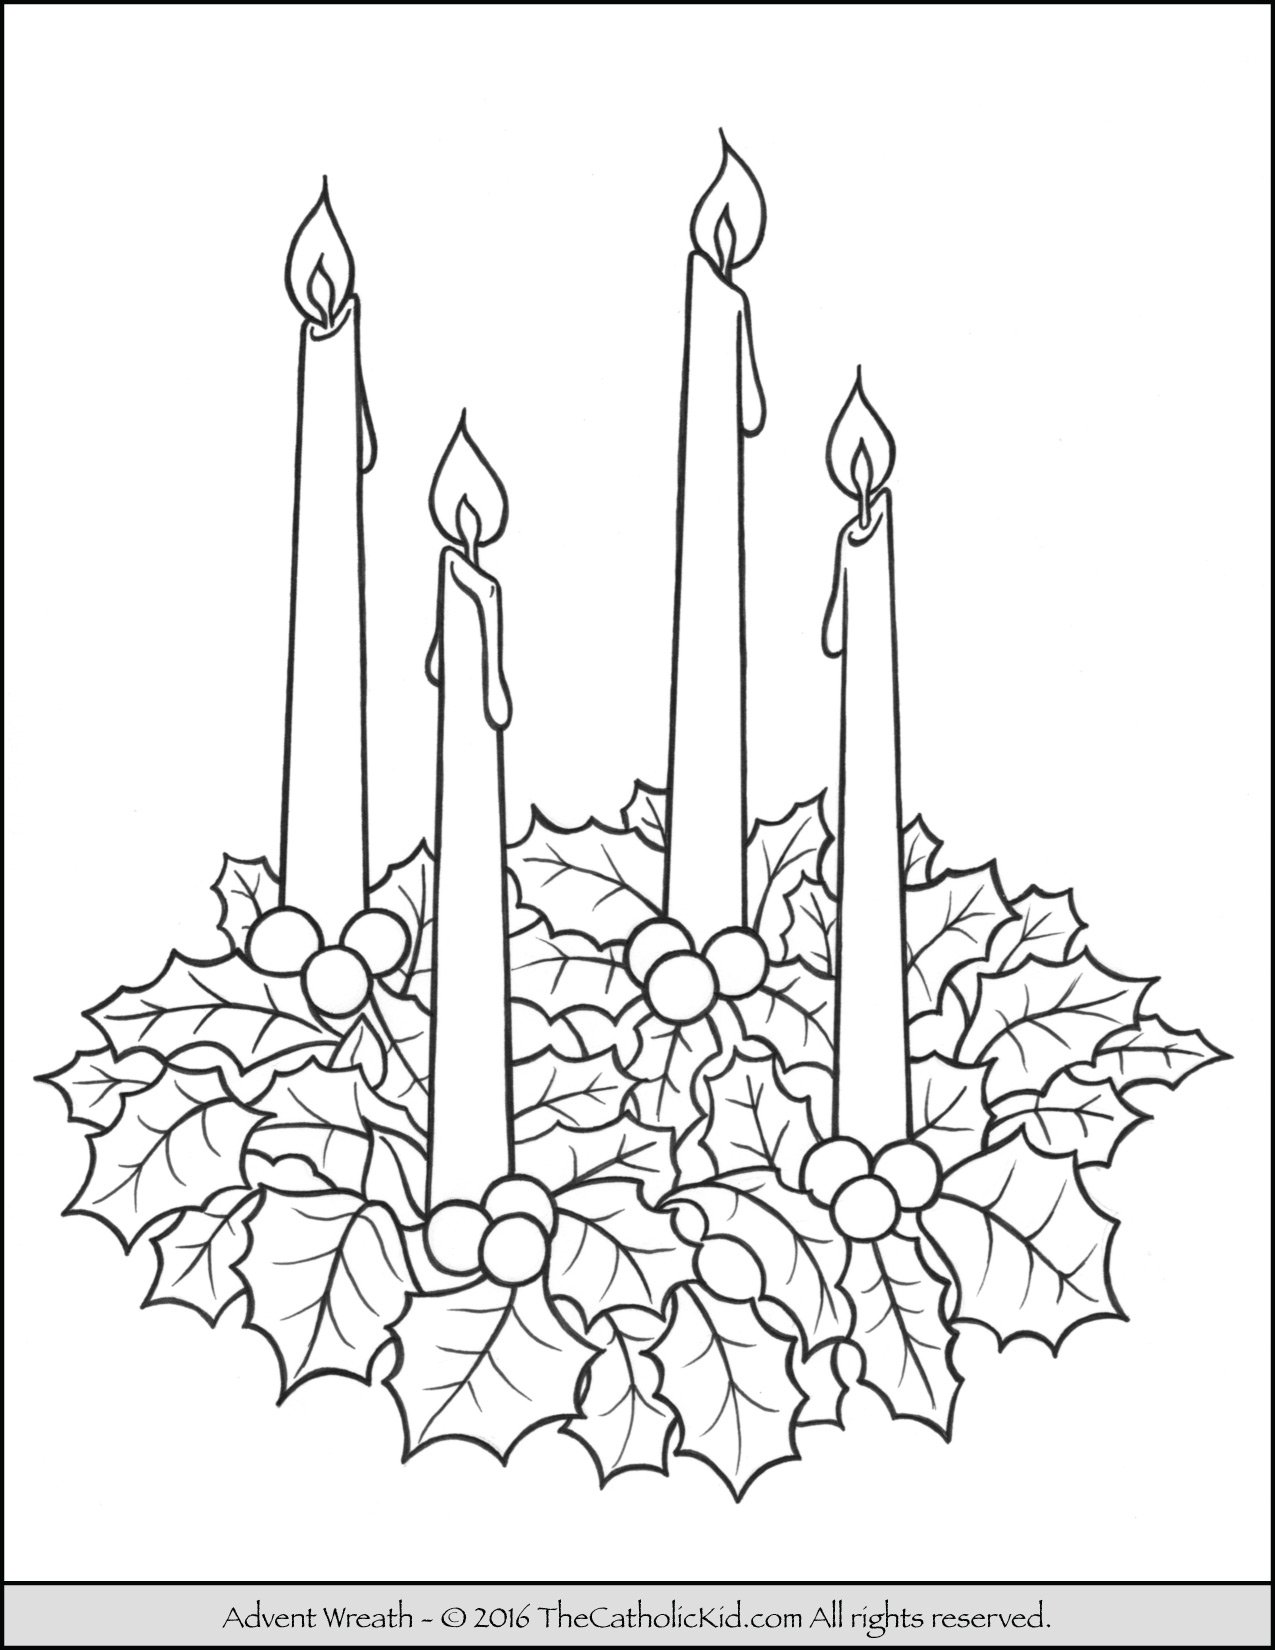 advent wreath coloring page - Advent Wreath Coloring Page